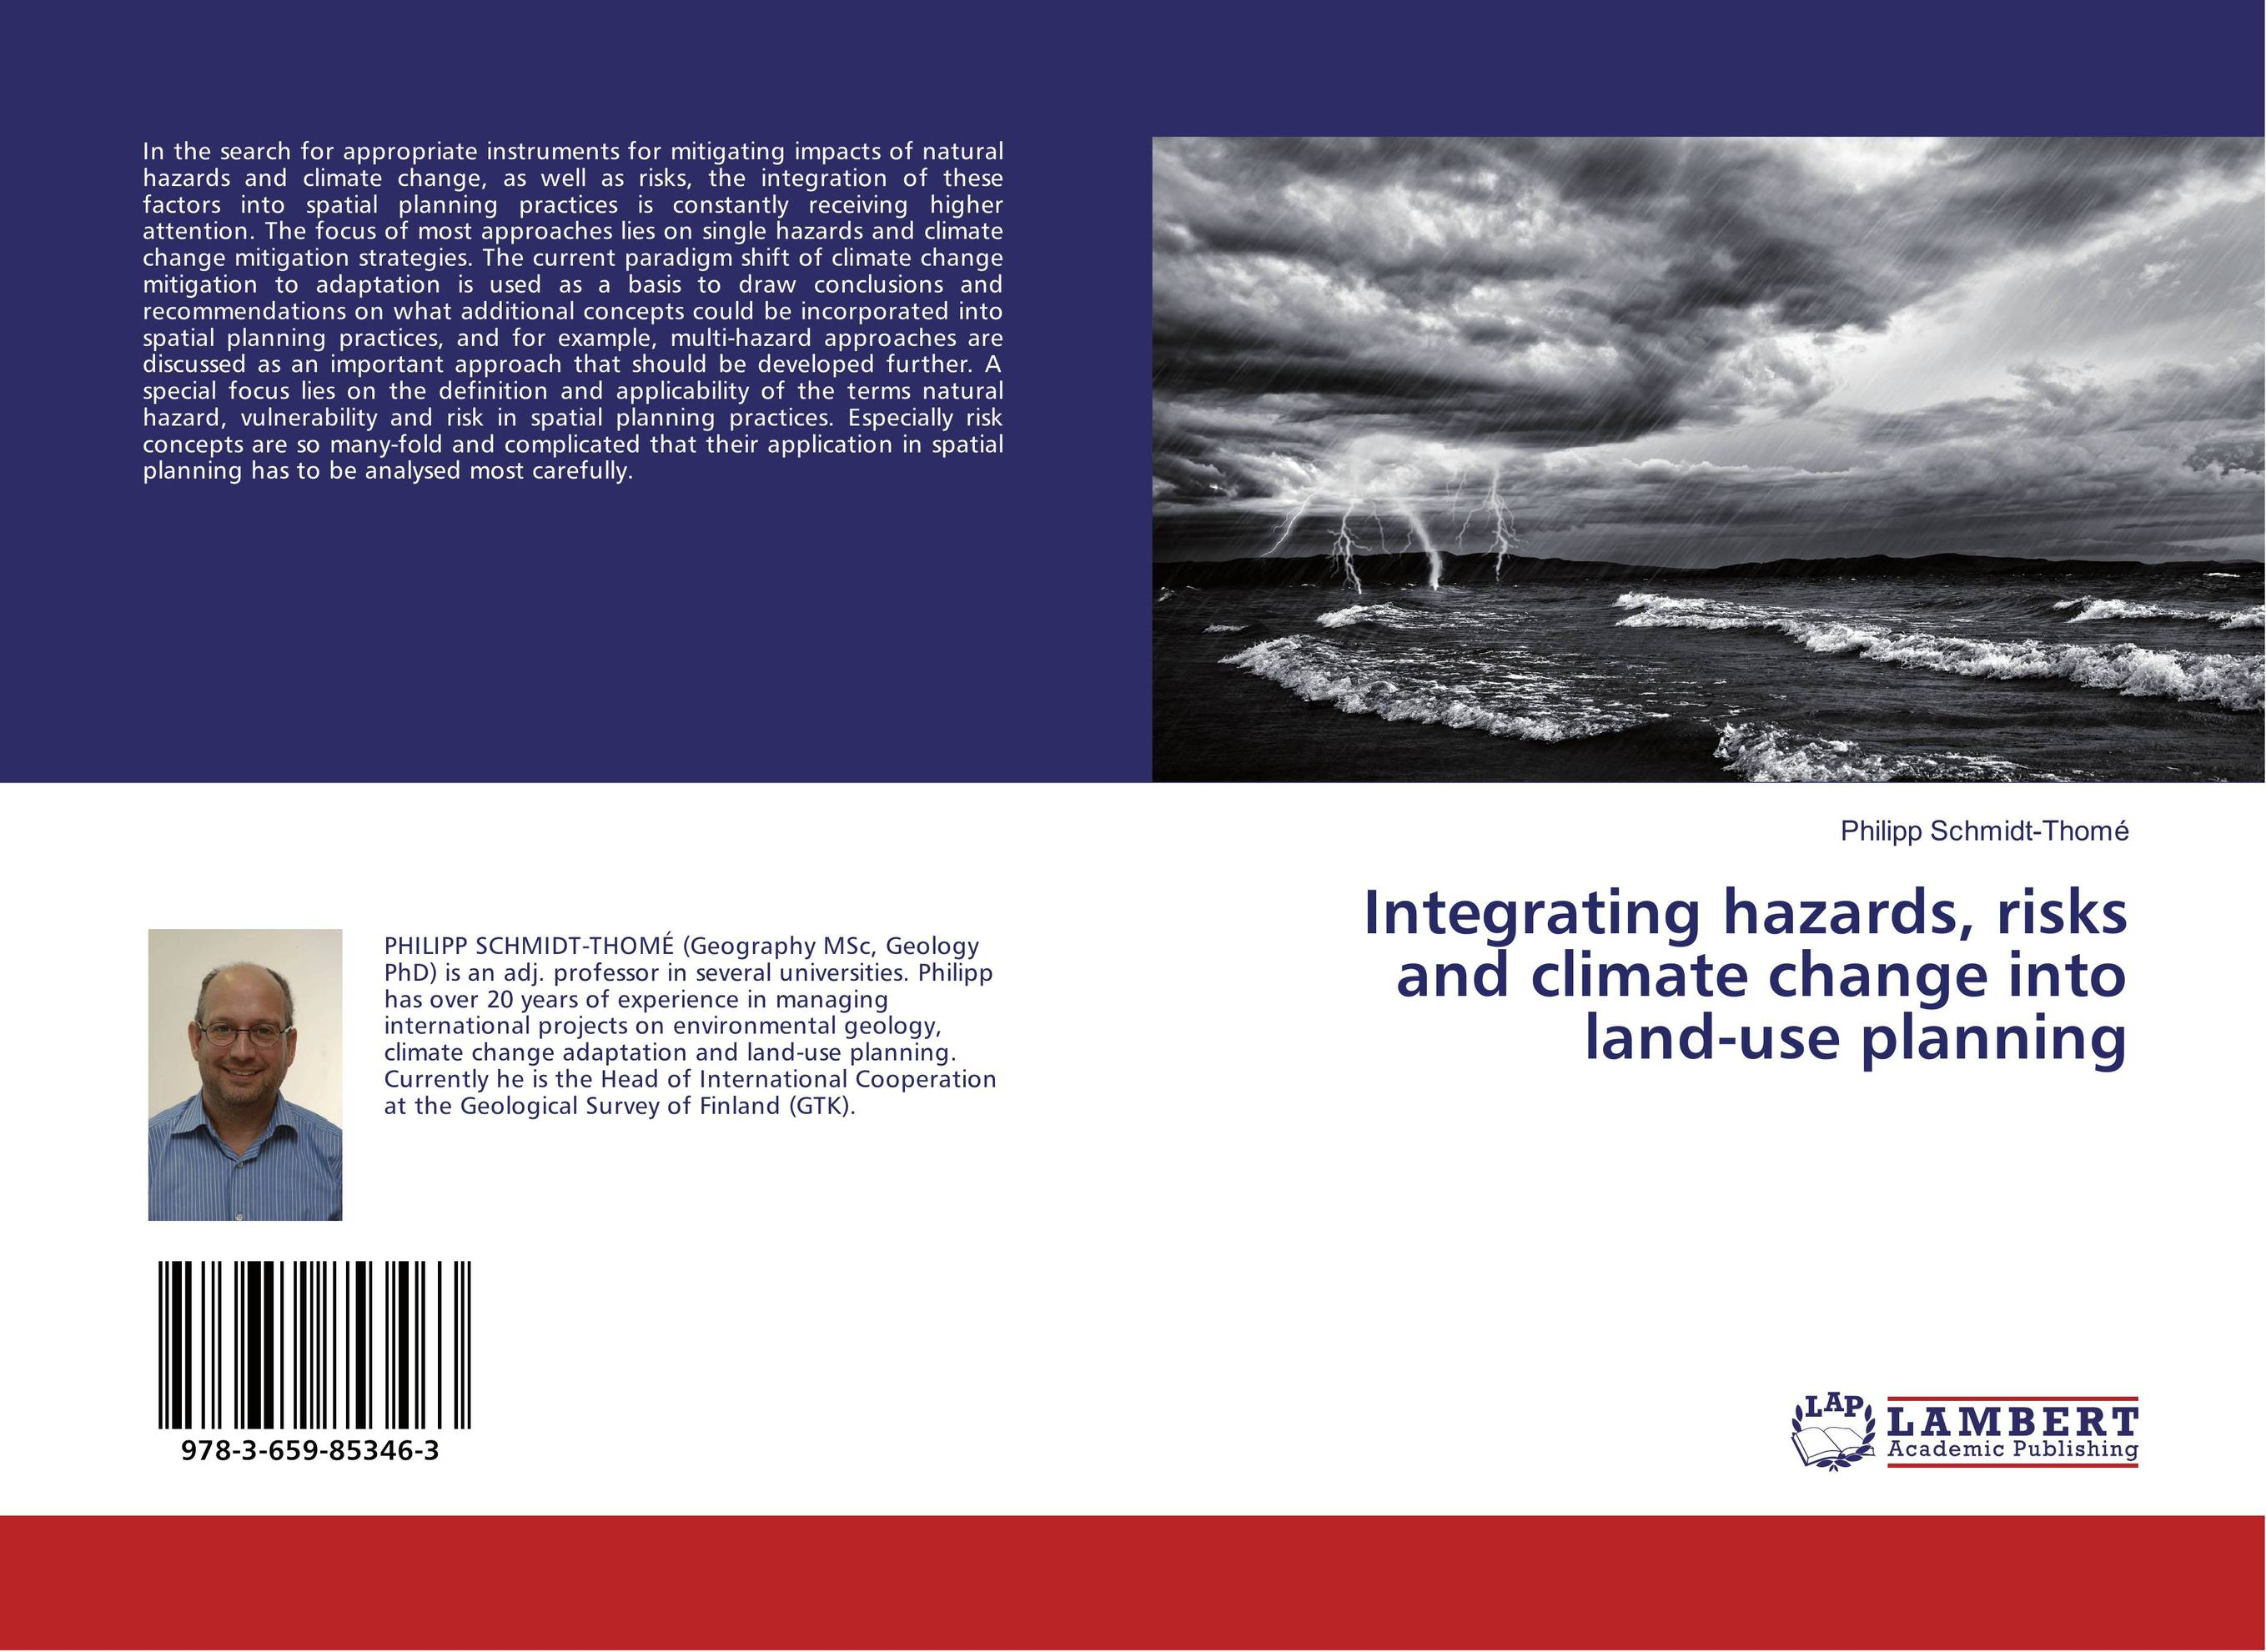 Integrating hazards, risks and climate change into land-use planning the integration of ethnic kazakh oralmans into kazakh society